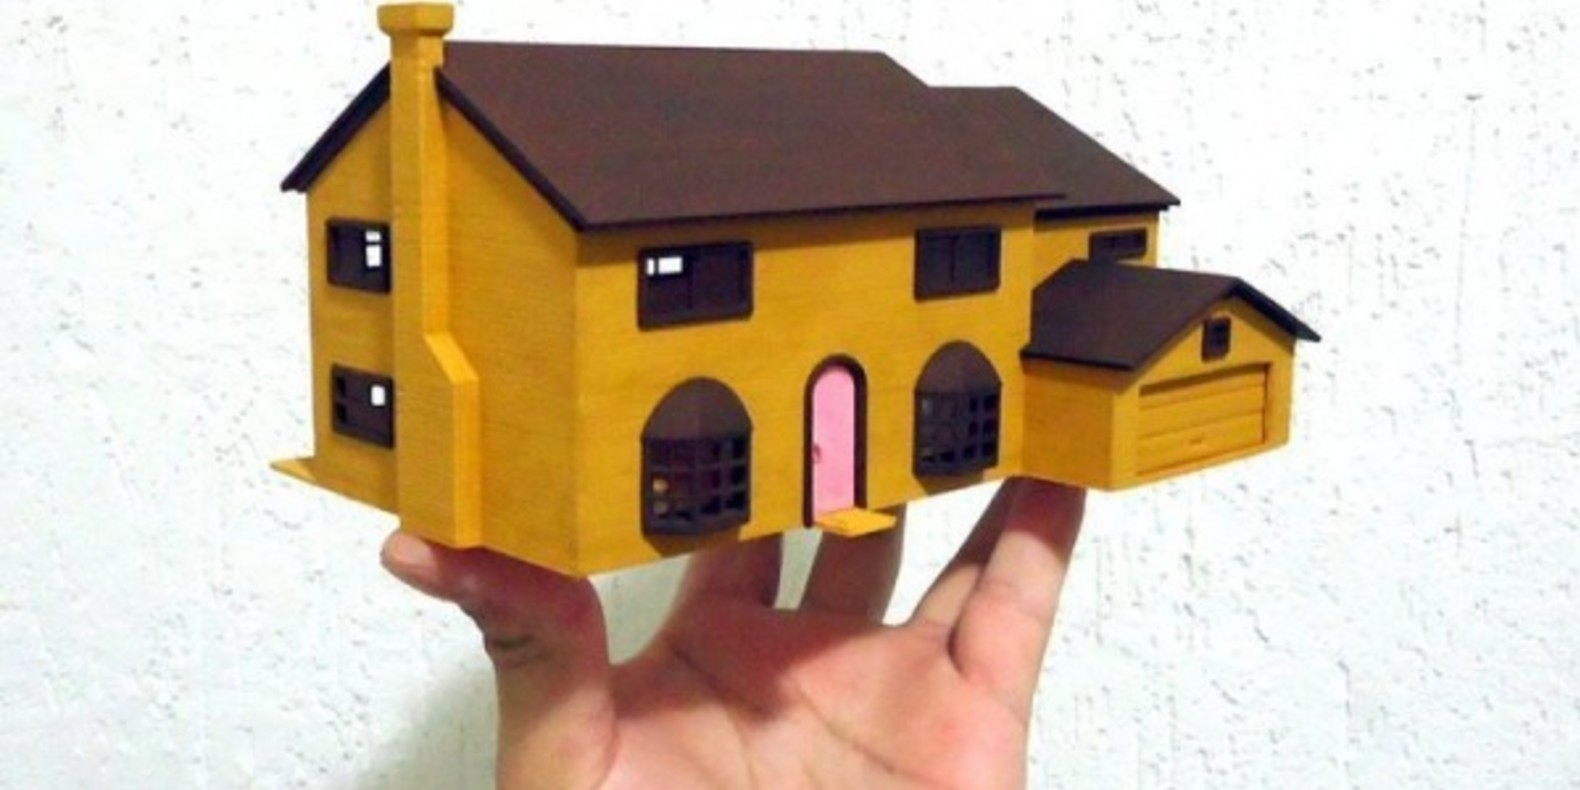 The Simpson house printed in 3D